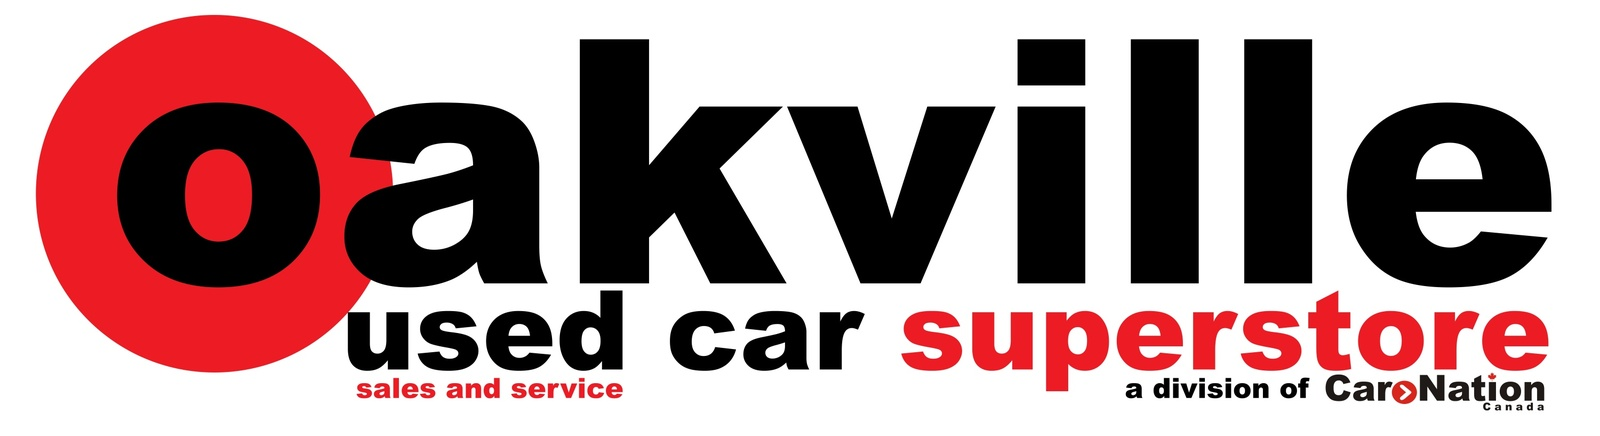 oakville used car superstore reviews